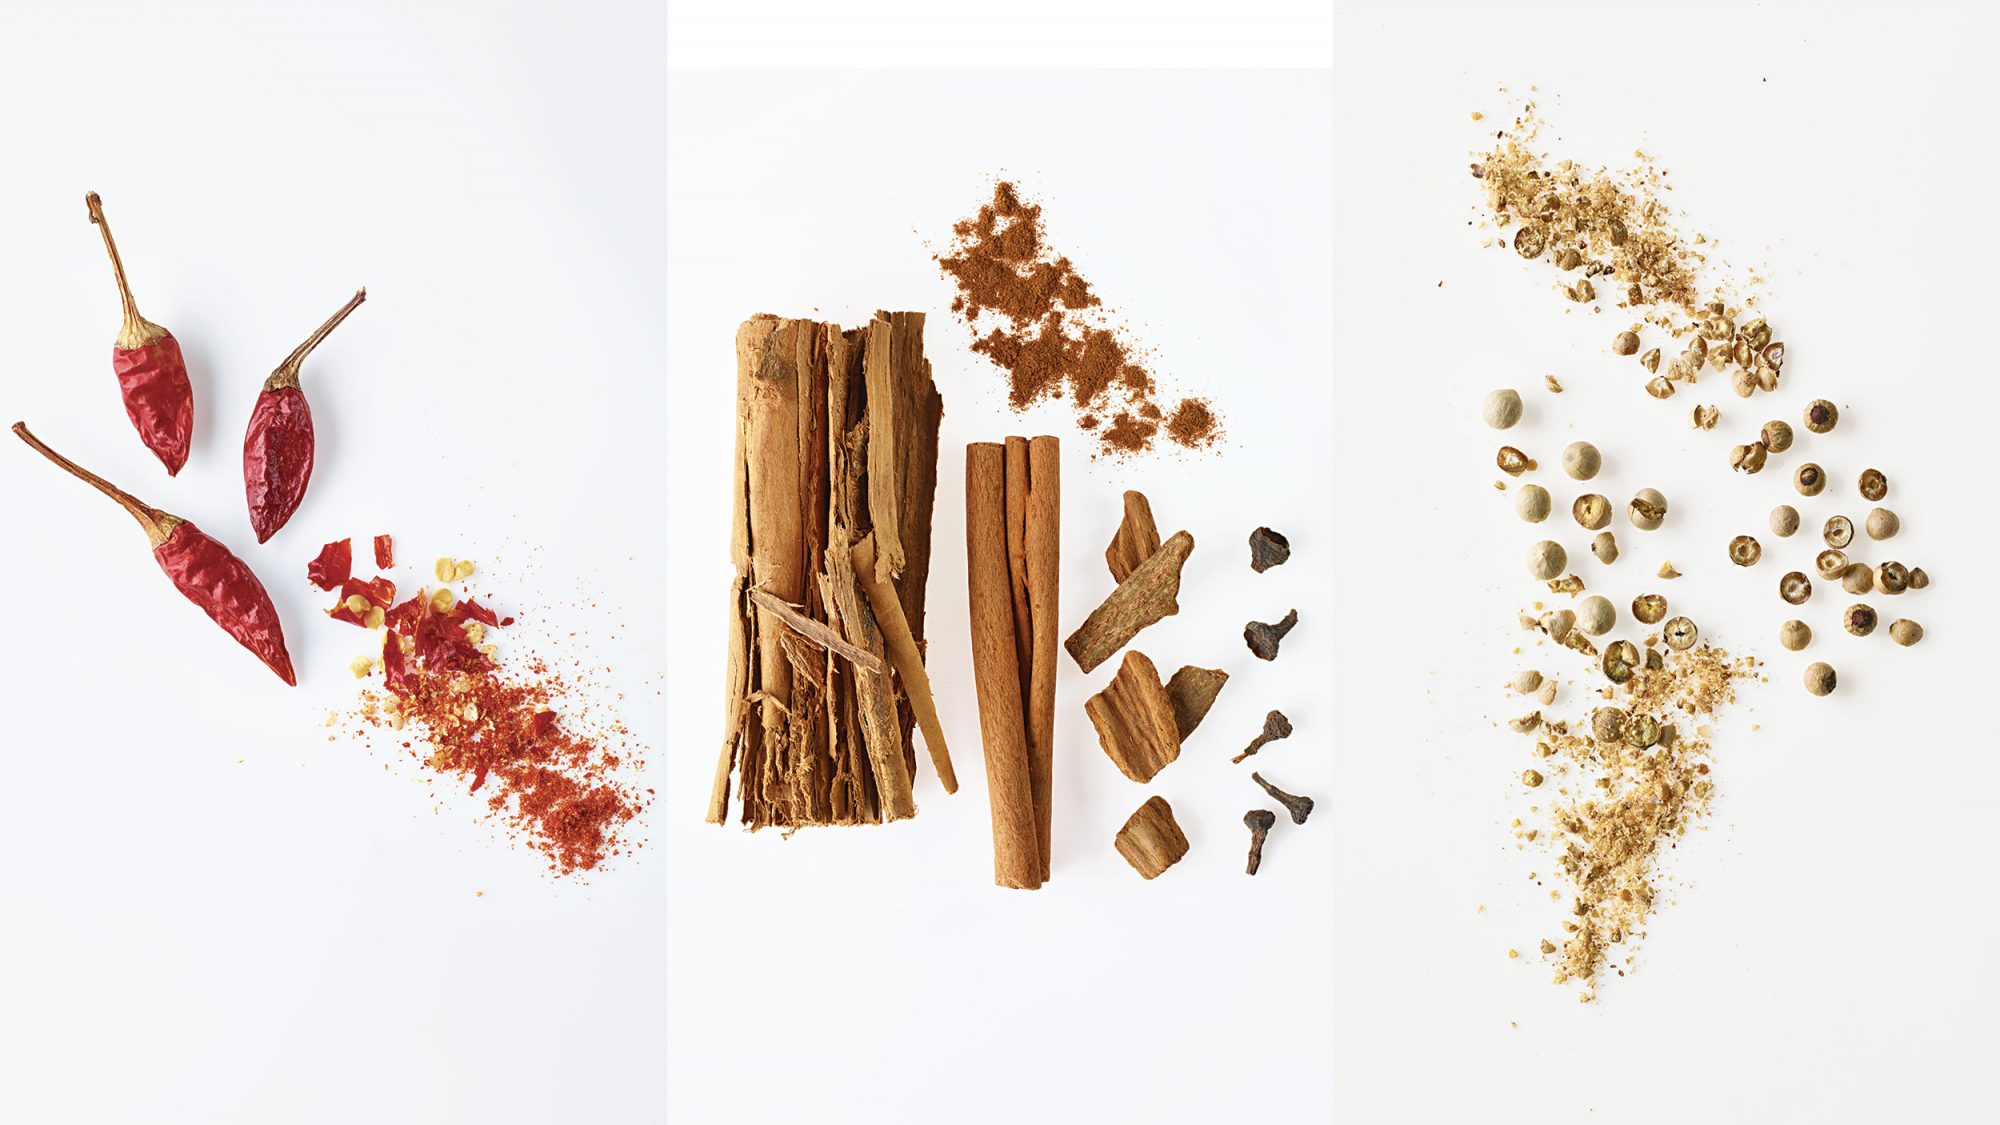 5 Things You Didn't Know About Spices